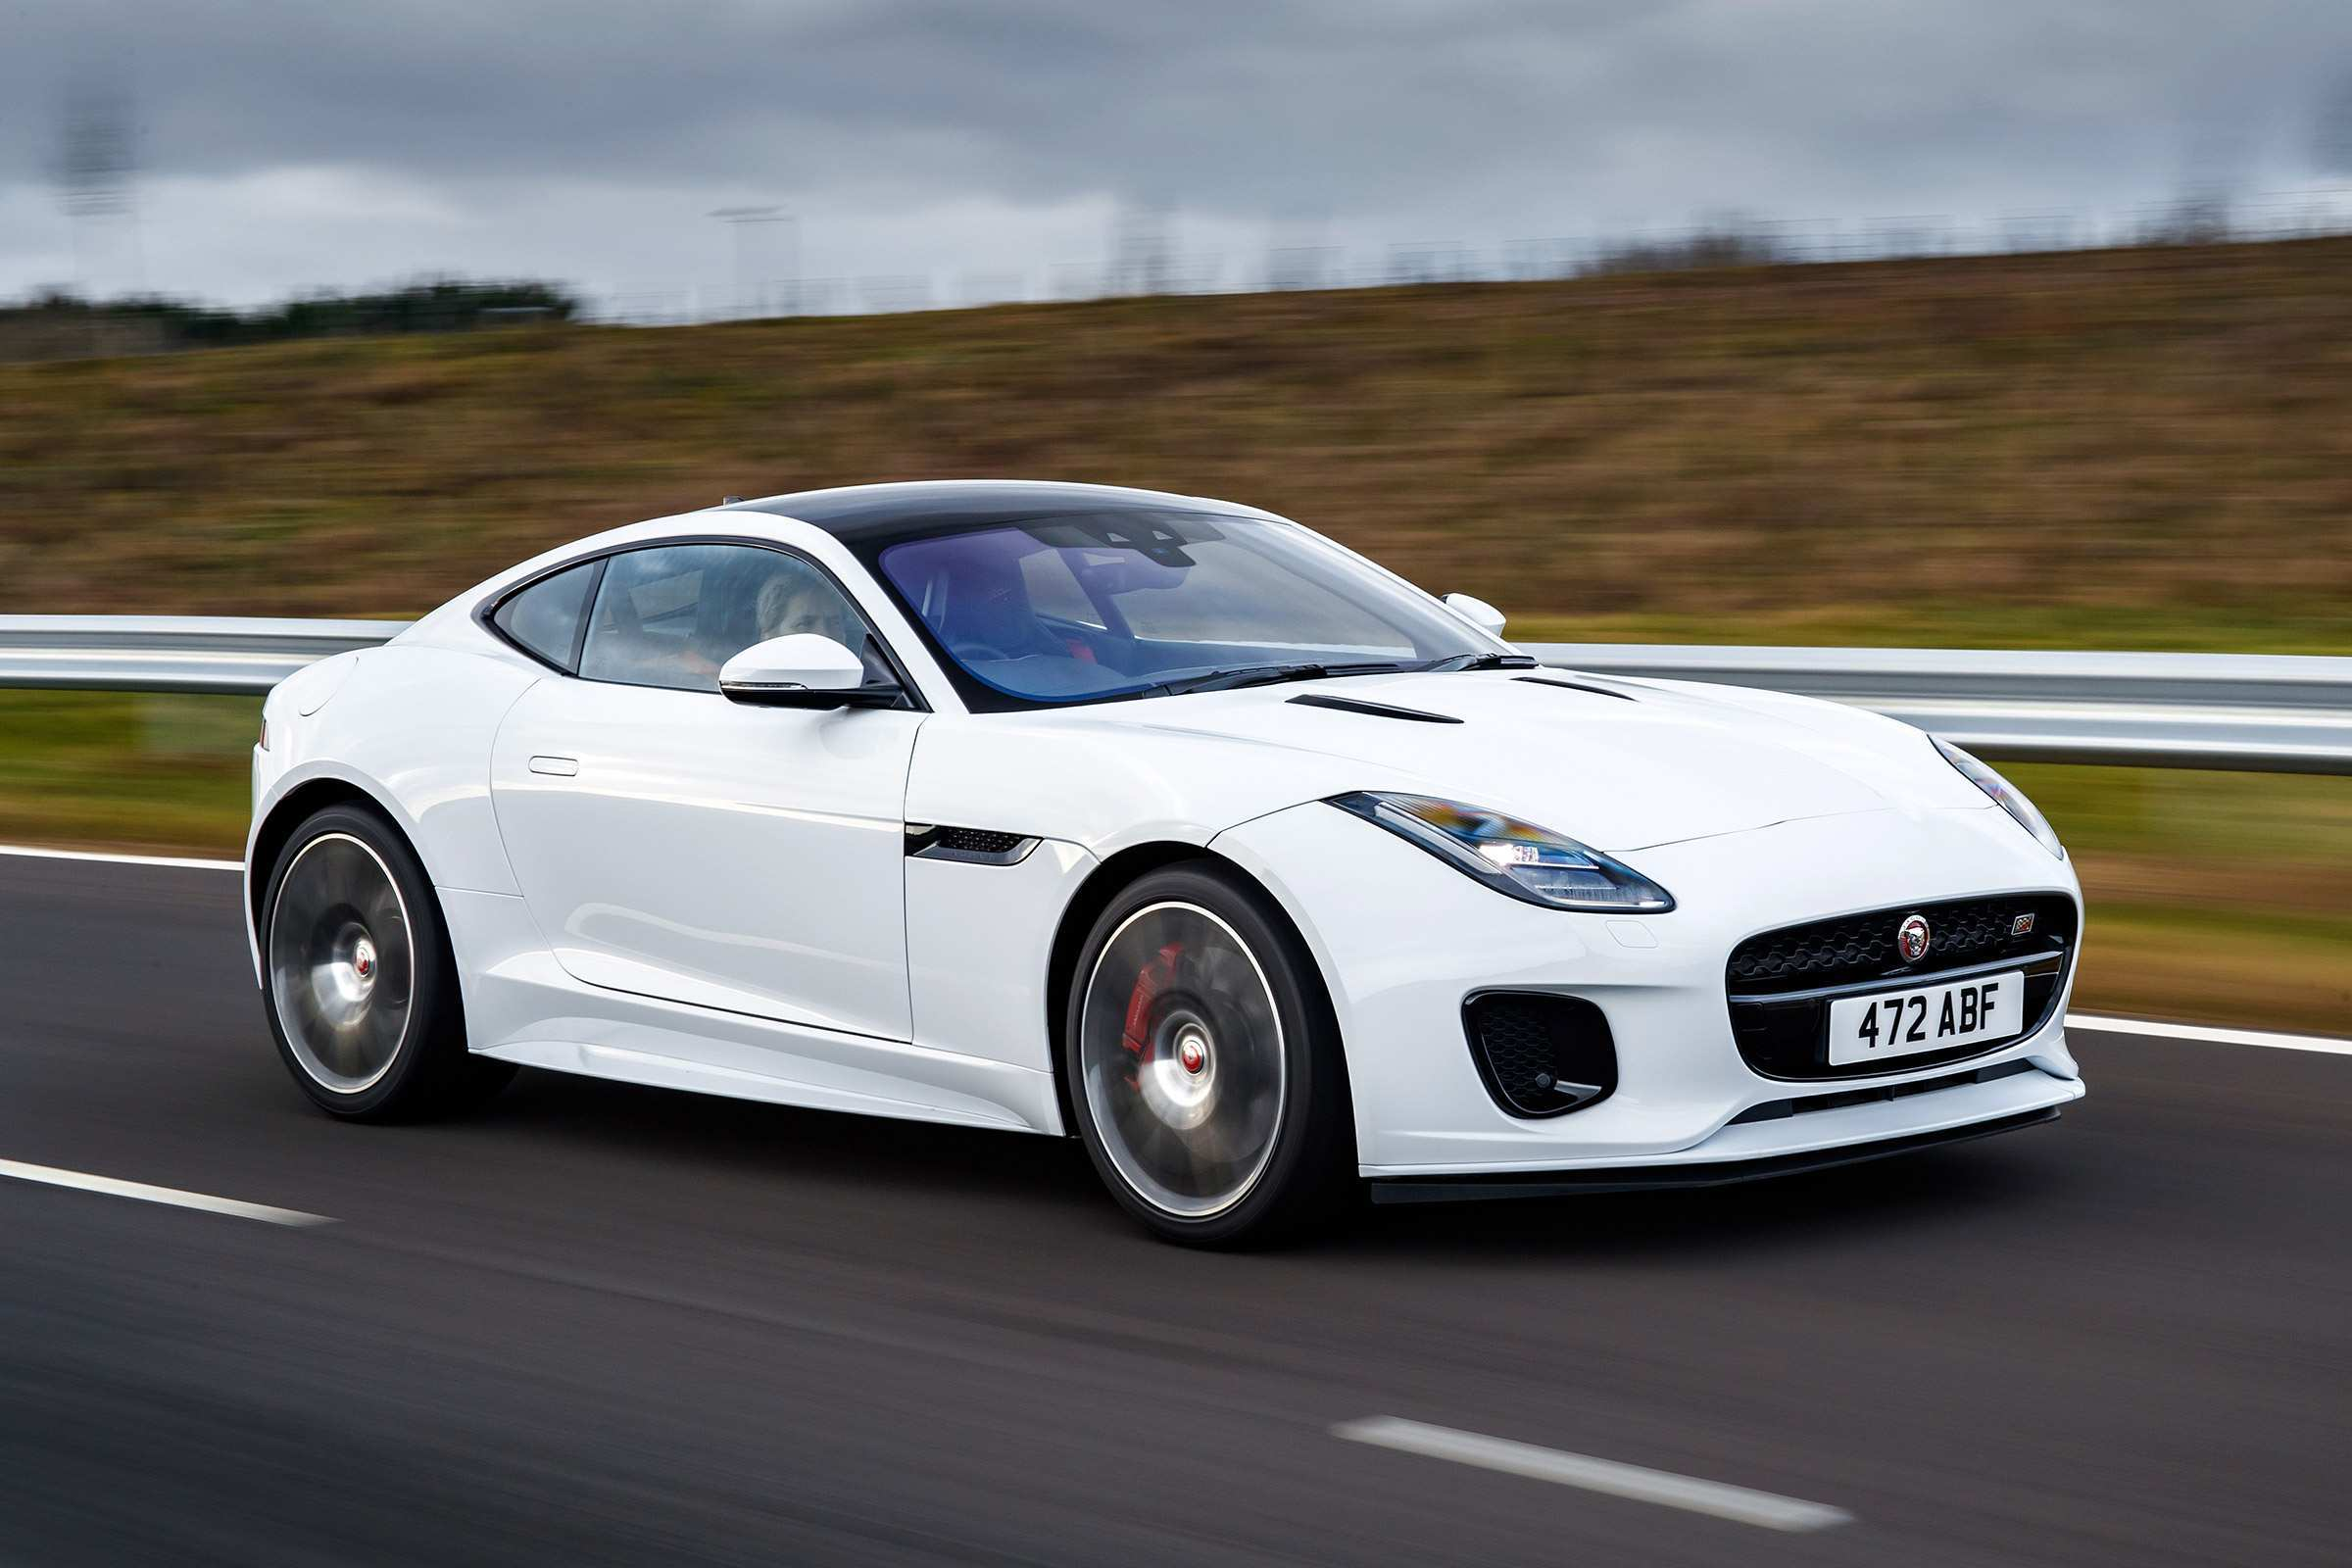 46 All New Jaguar F Type 2019 Review Prices